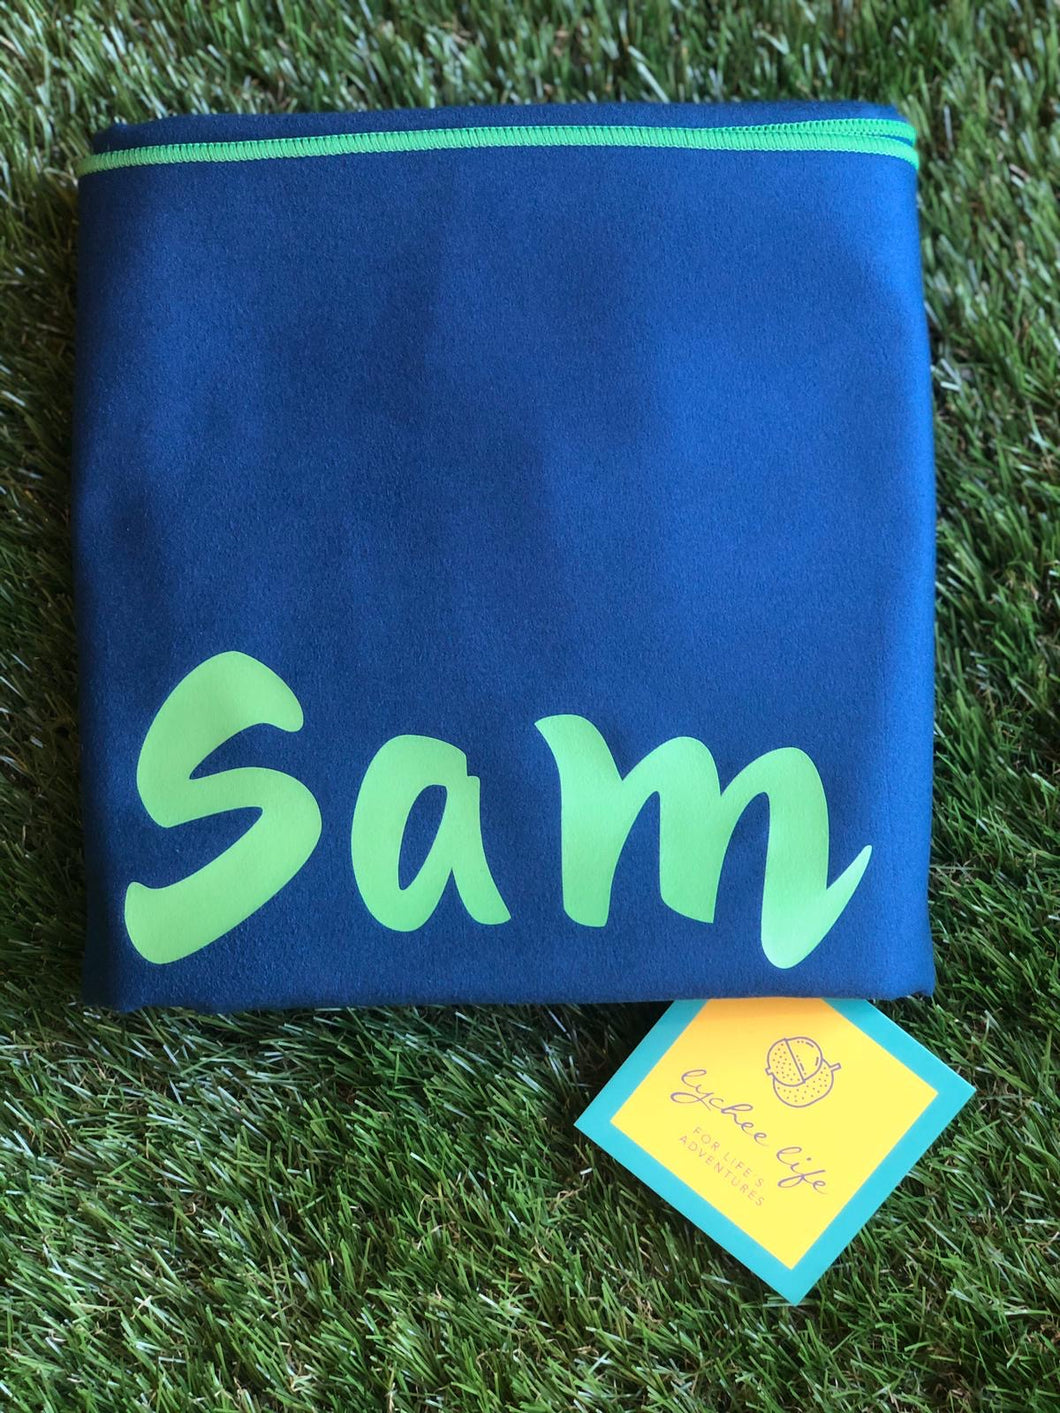 XL Microfibre Towel in Navy with Green Trim